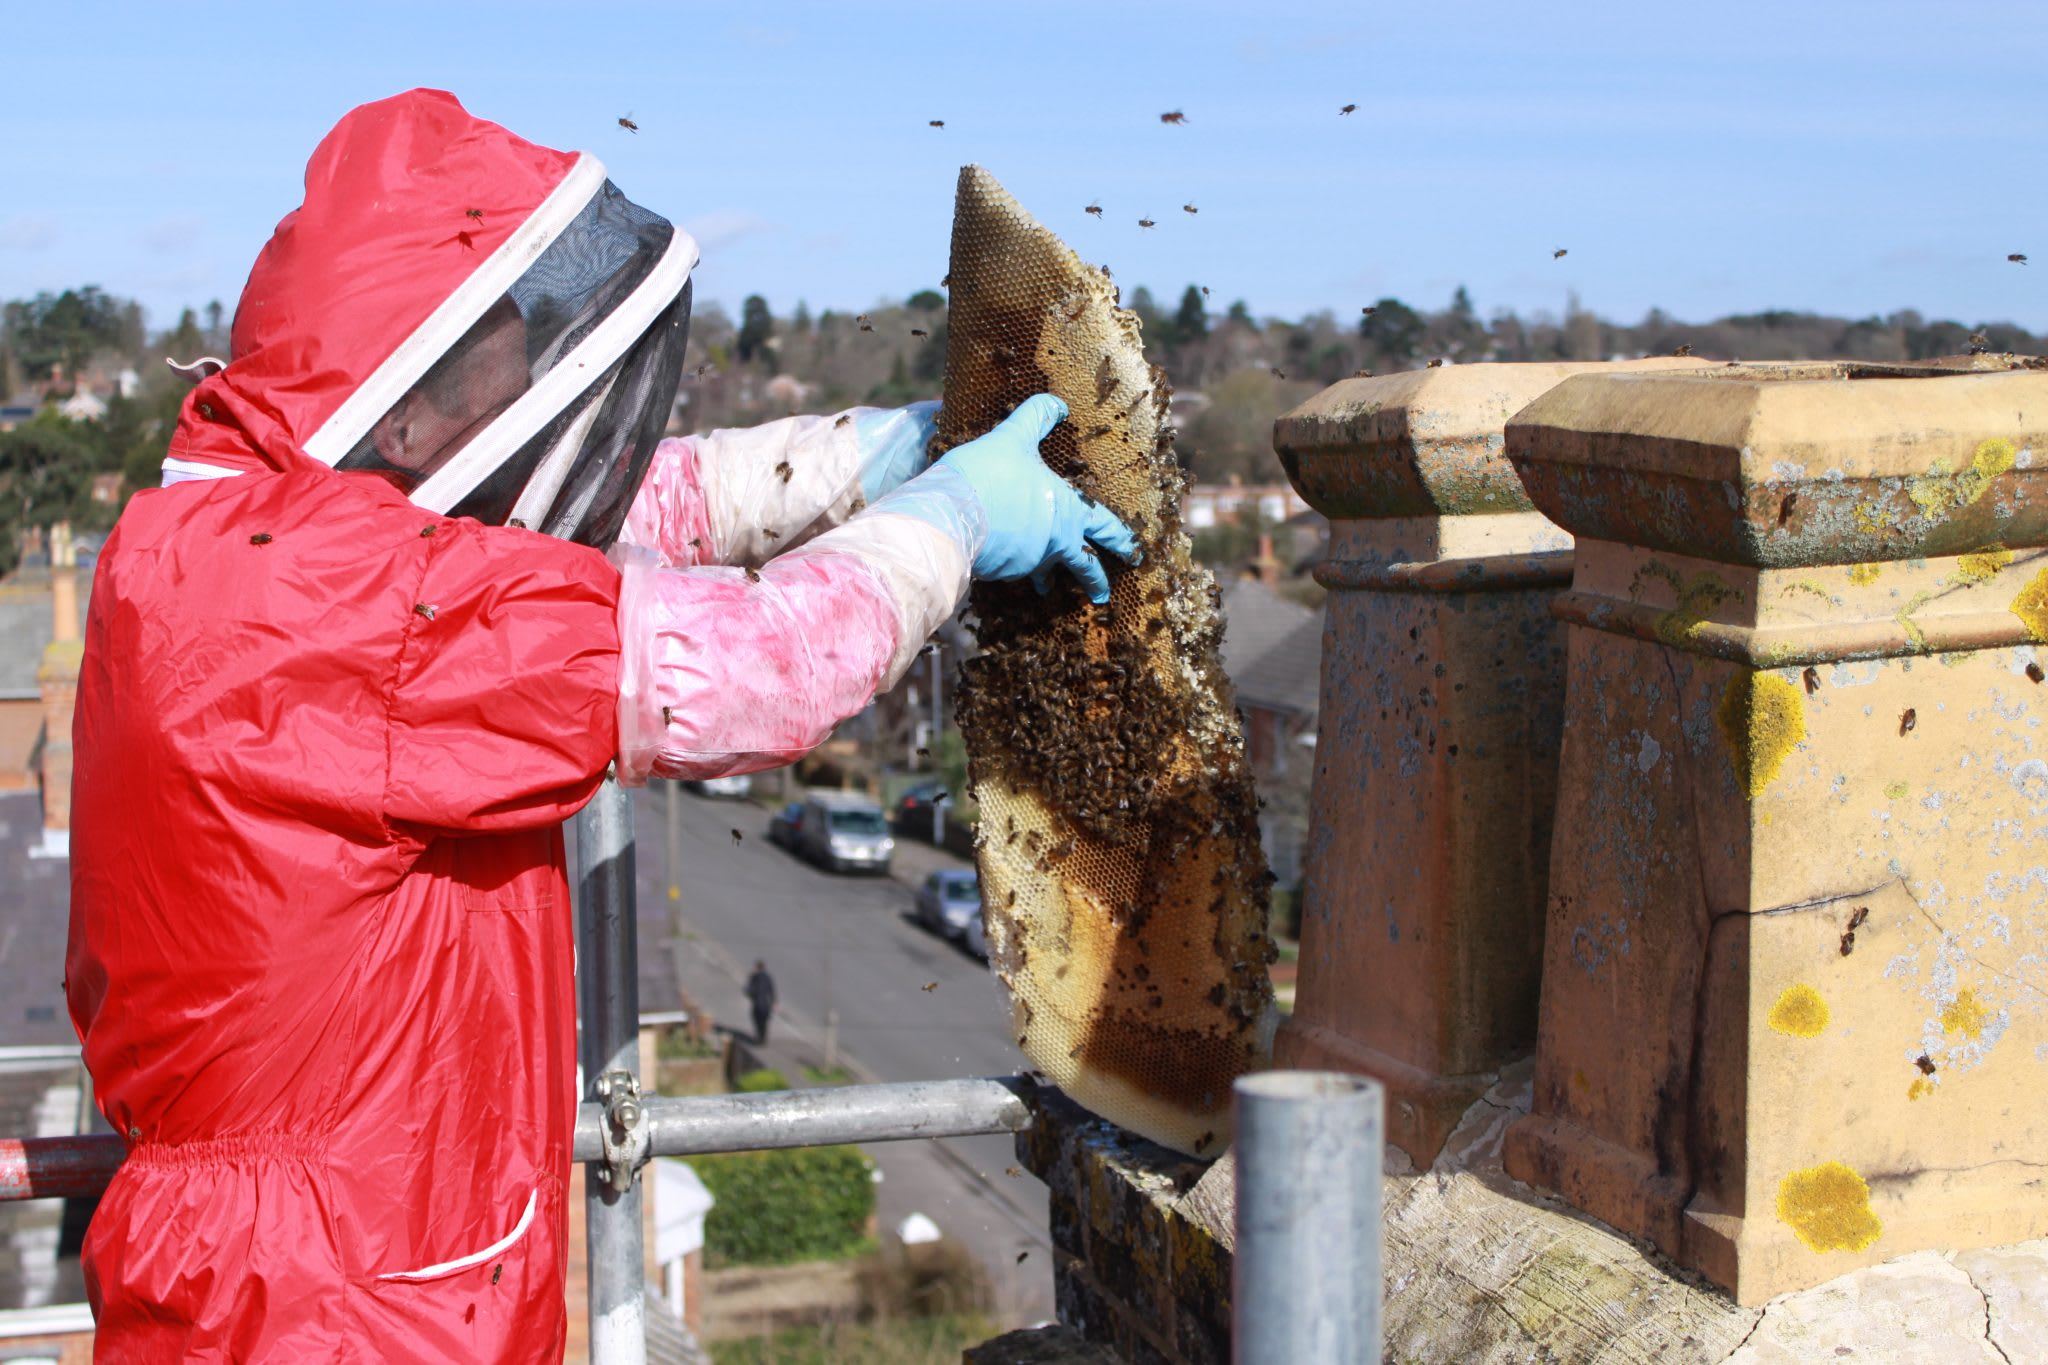 Everything you need to know about removing honey bees in a